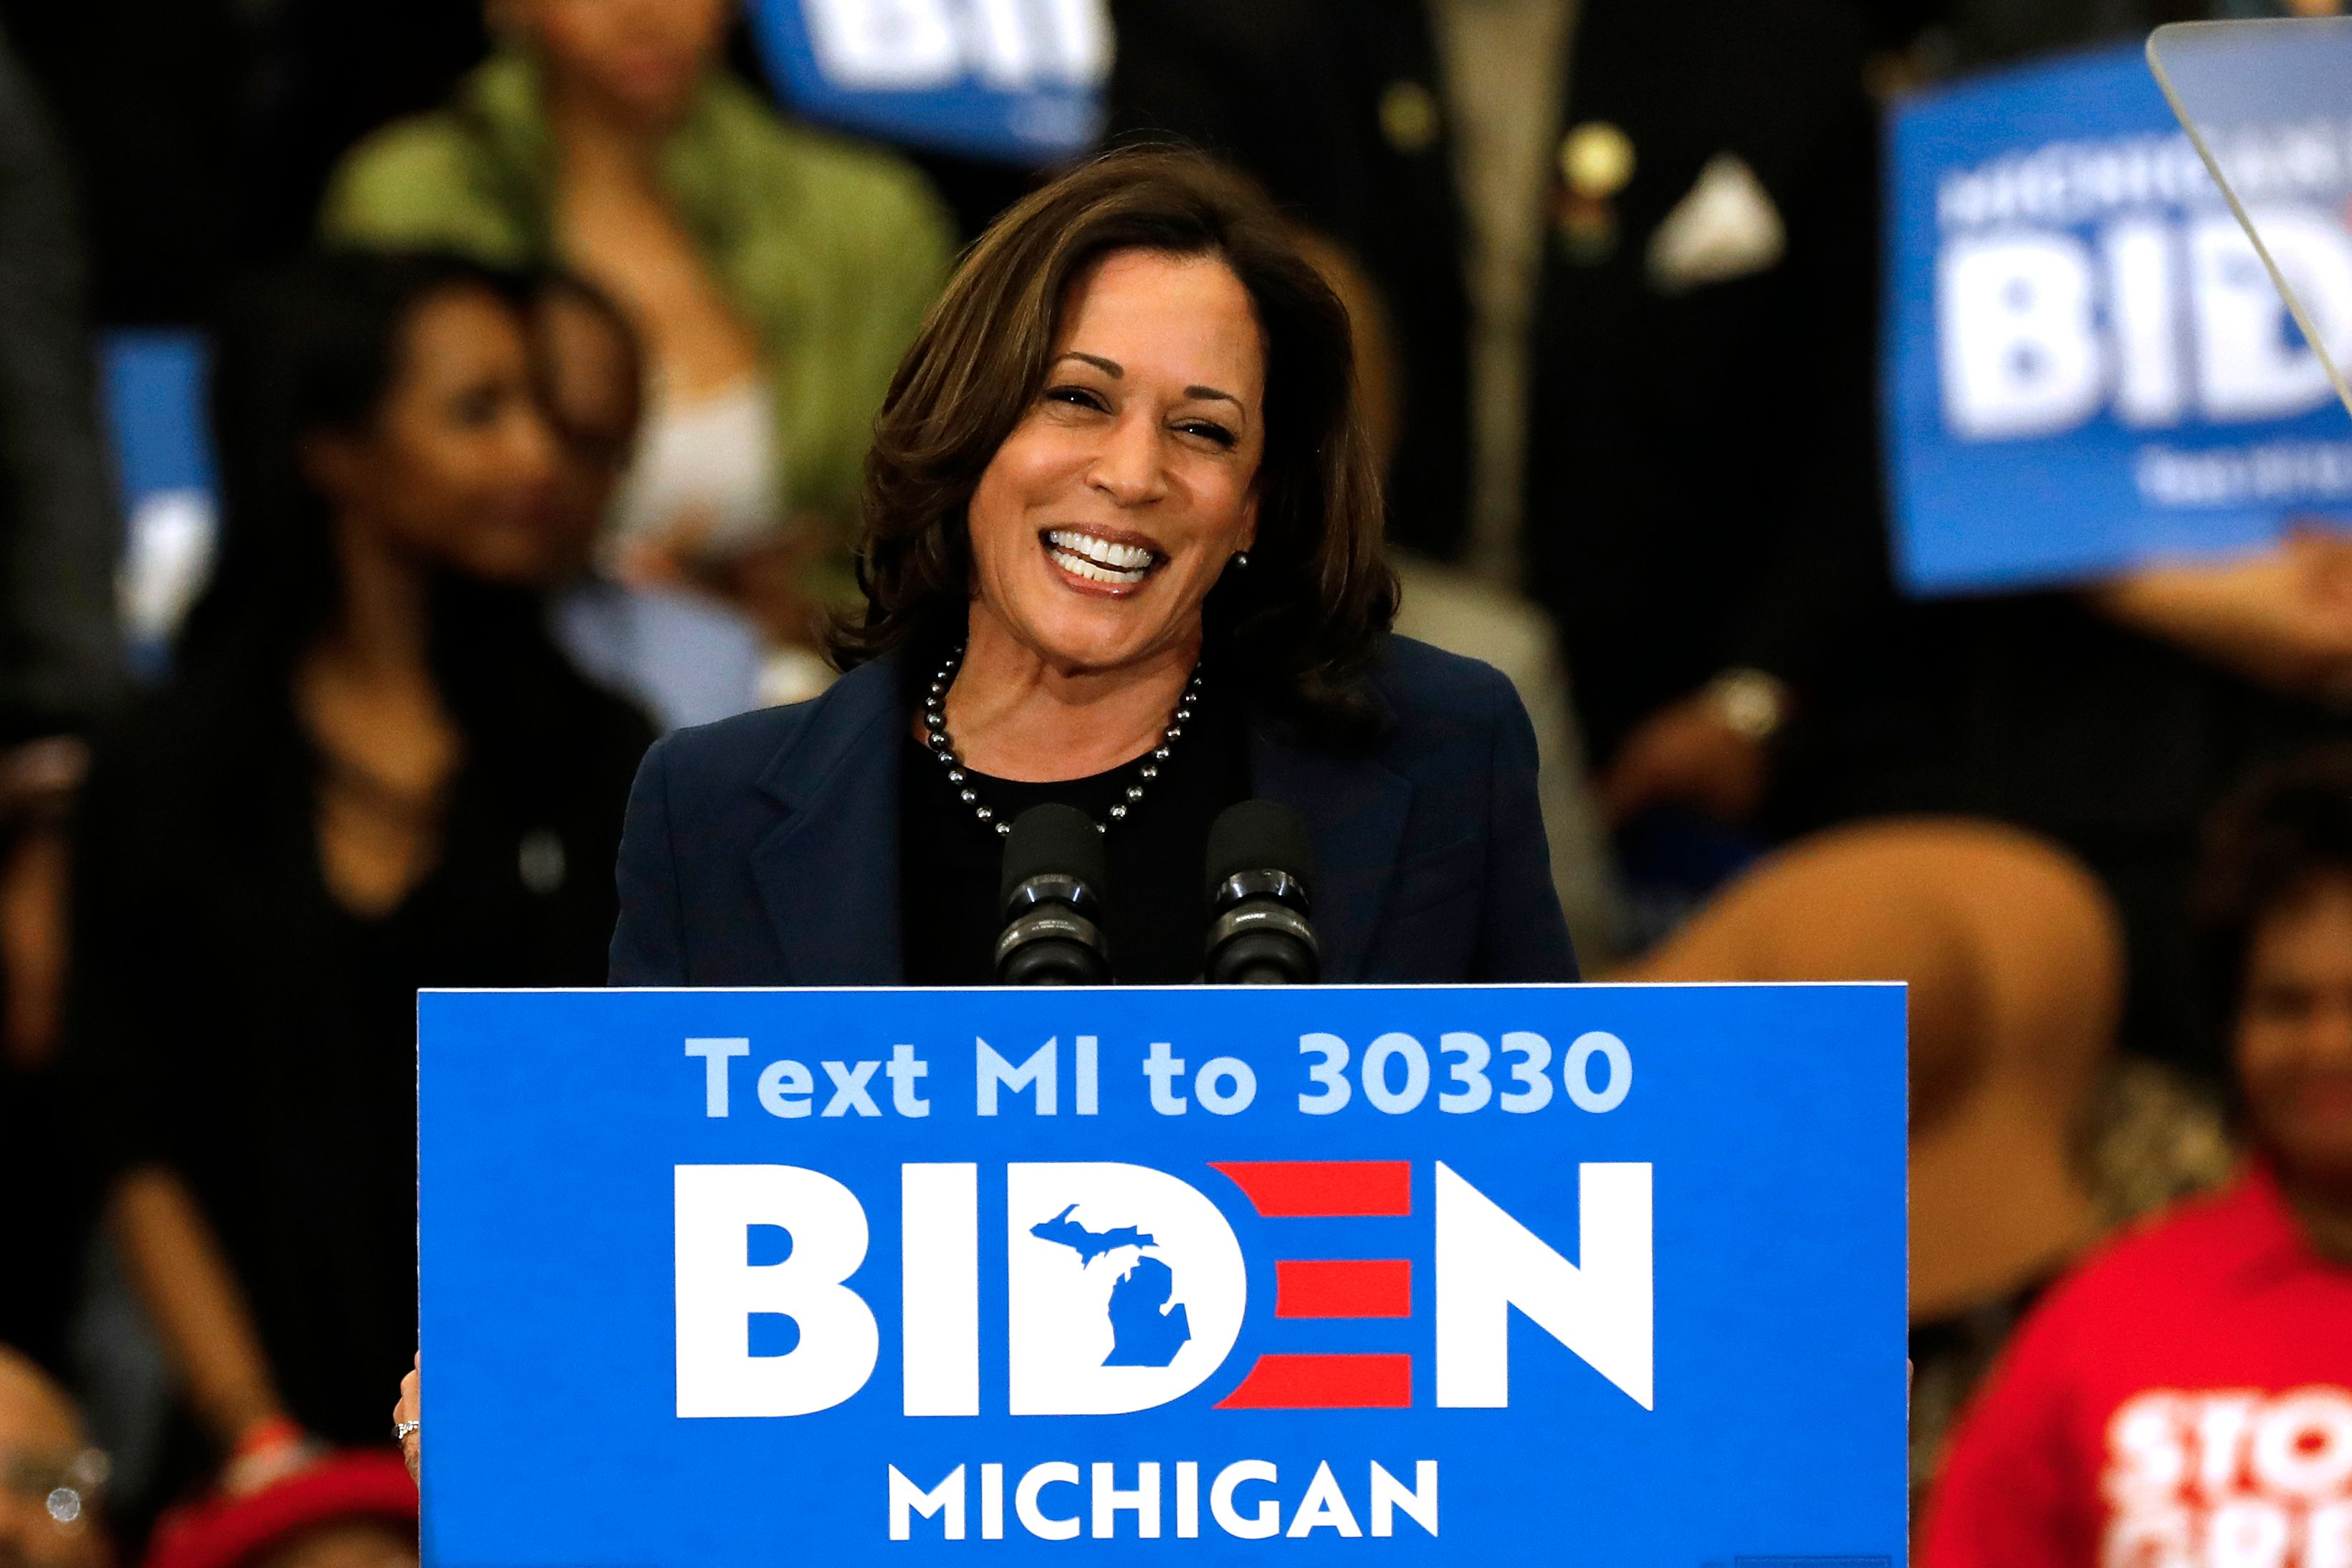 California Senator Kamala Harris endorses Democratic presidential candidate former Vice President Joe Biden as she speaks to supporters during a campaign rally at Renaissance High School in Detroit, Michigan on March 9, 2020. (Photo by JEFF KOWALSKY/AFP via Getty Images)